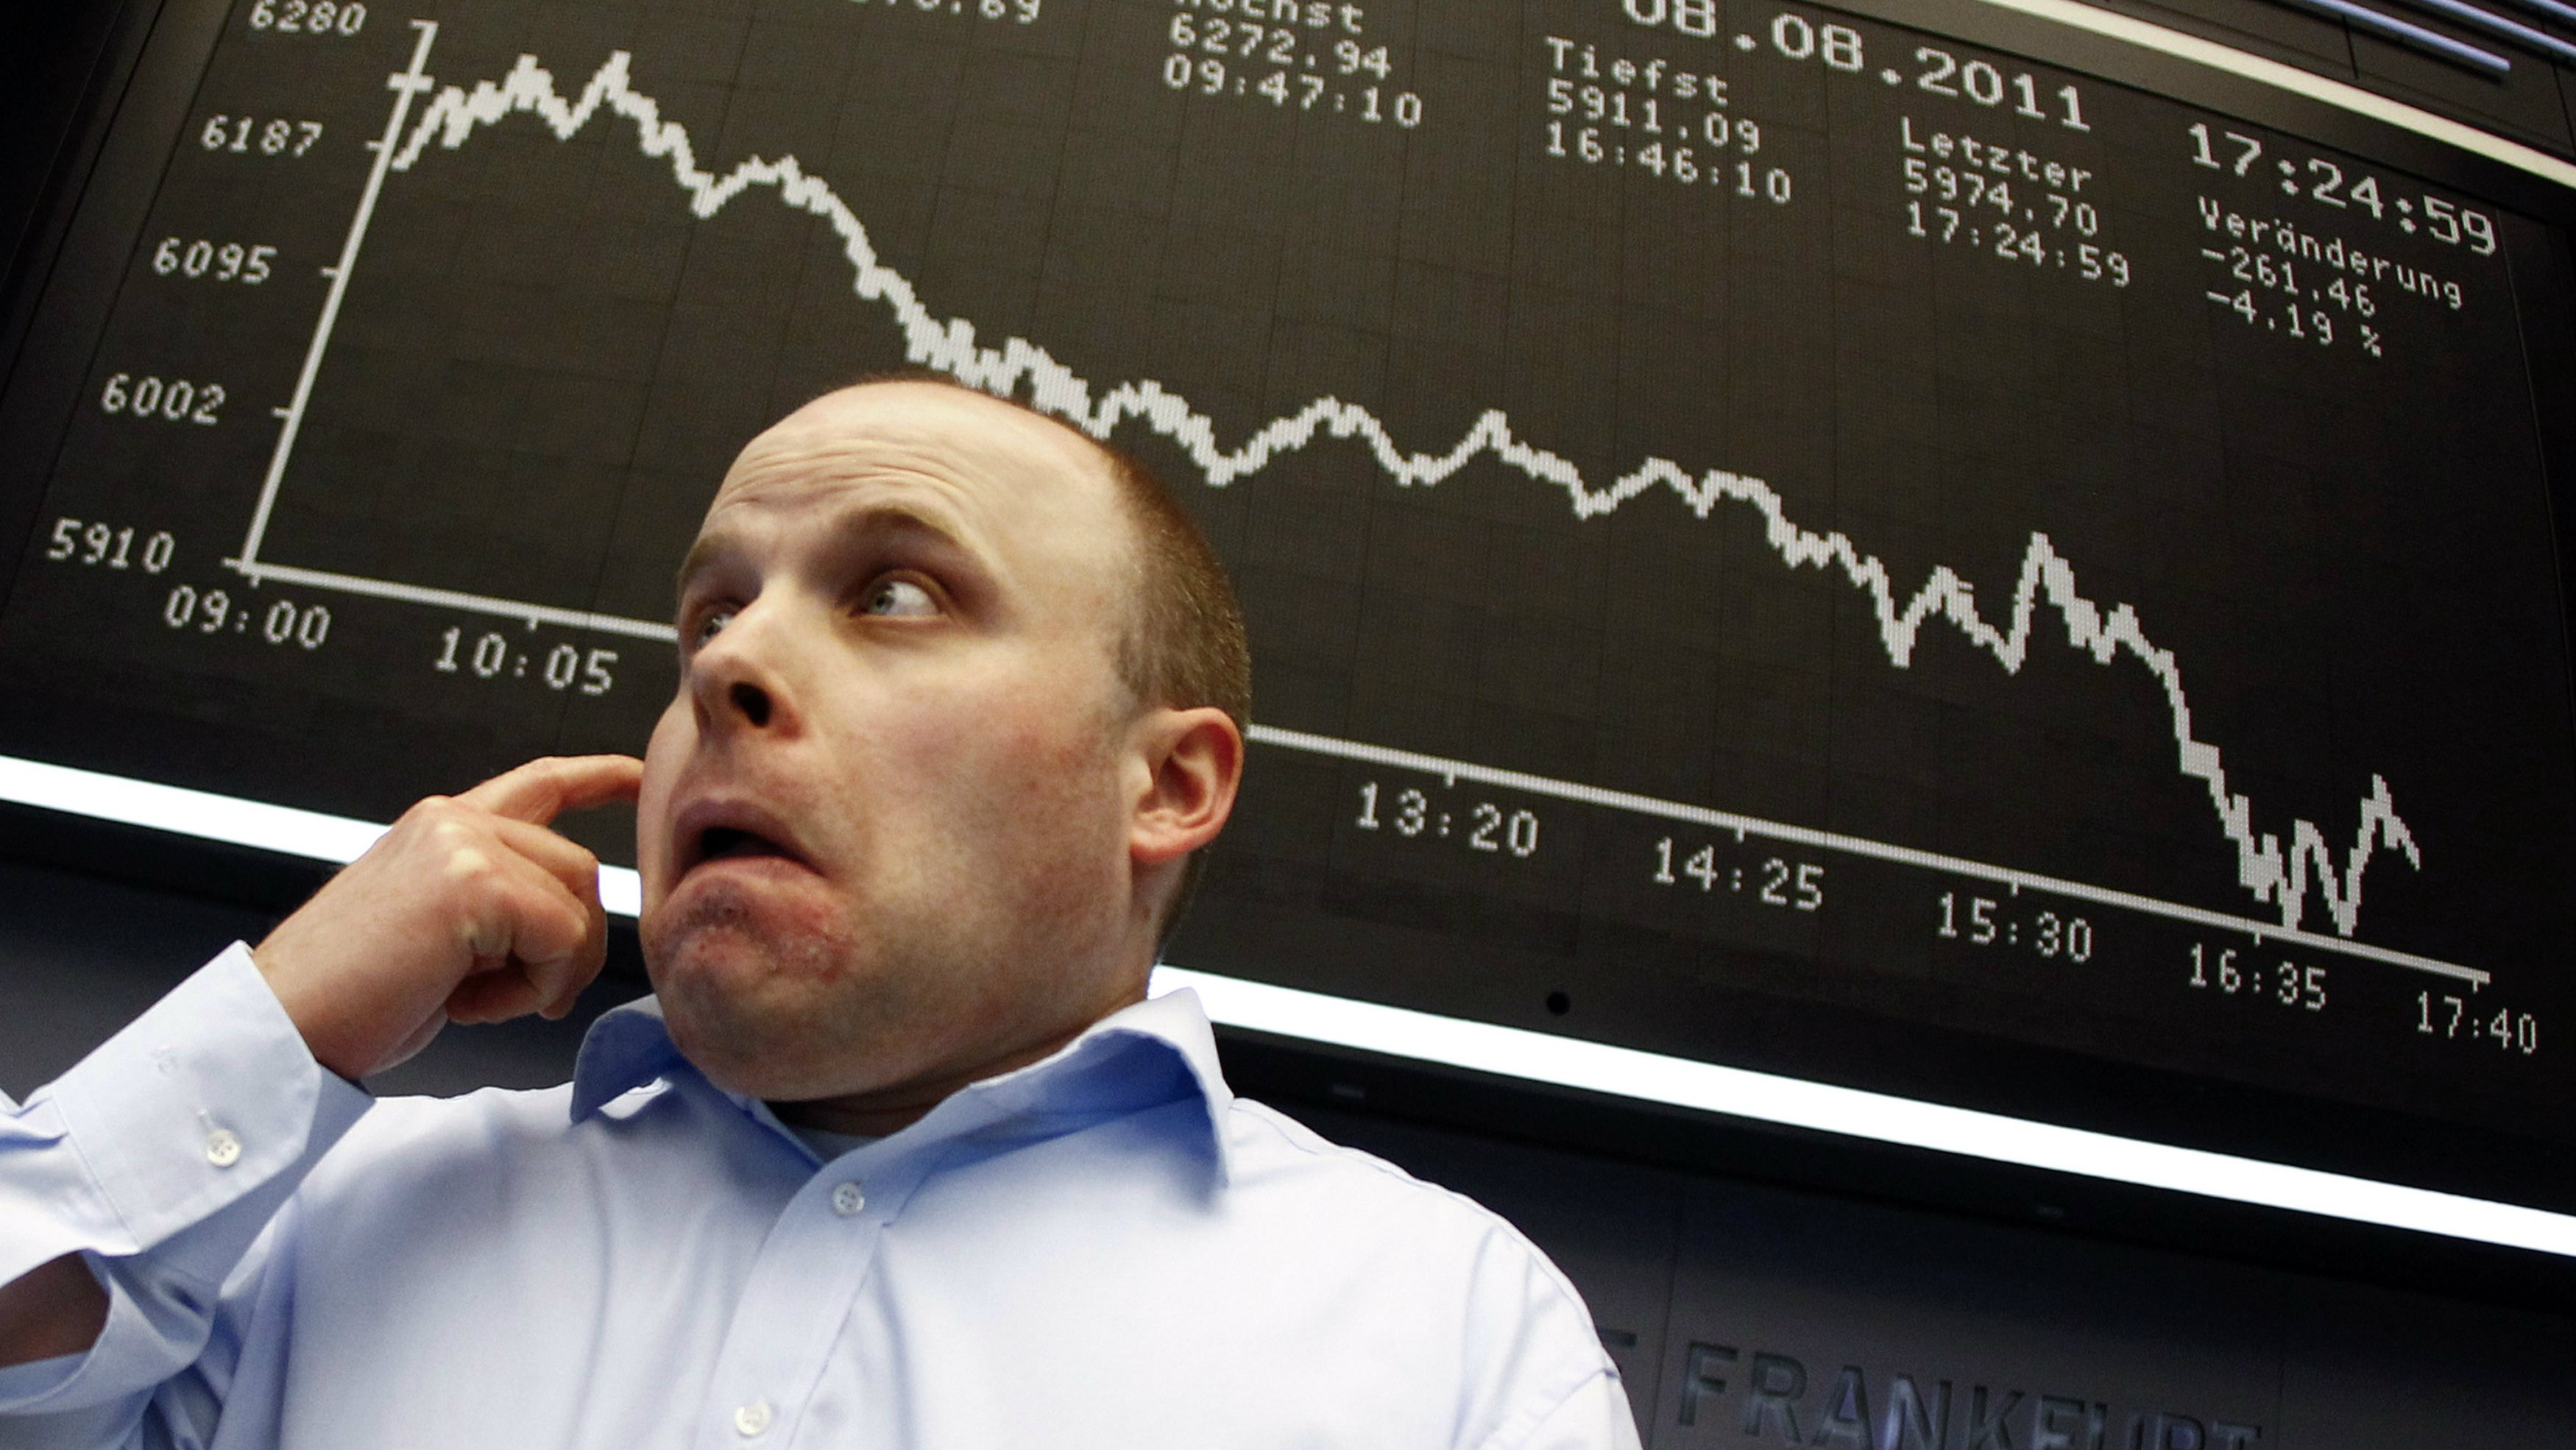 A trader reacts in front of the DAX index board at Frankfurt's stock exchange August 8, 2011. Germany's DAX fell 4.5 percent to below 6,000-mark for the first time since September 2010.